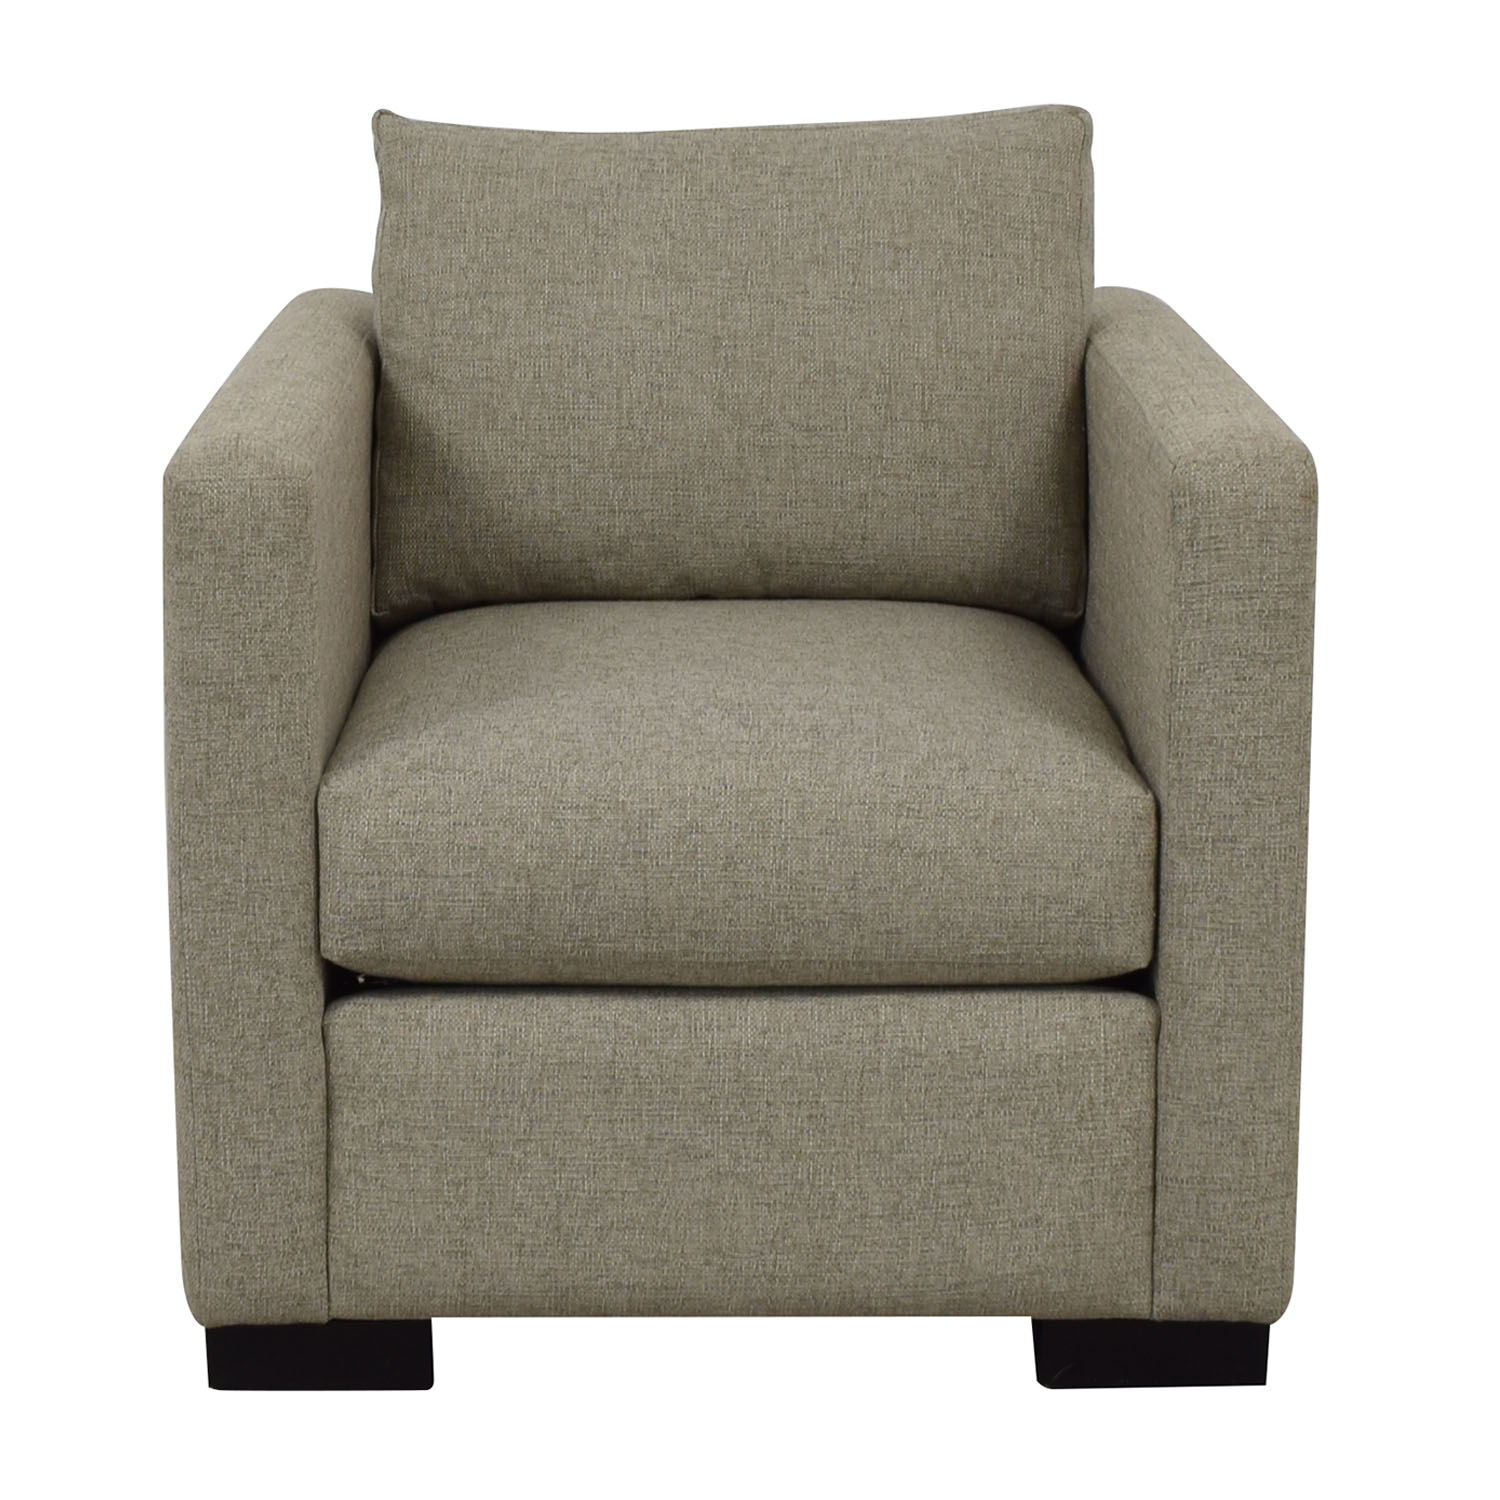 Contemporary Beige Accent Chair used